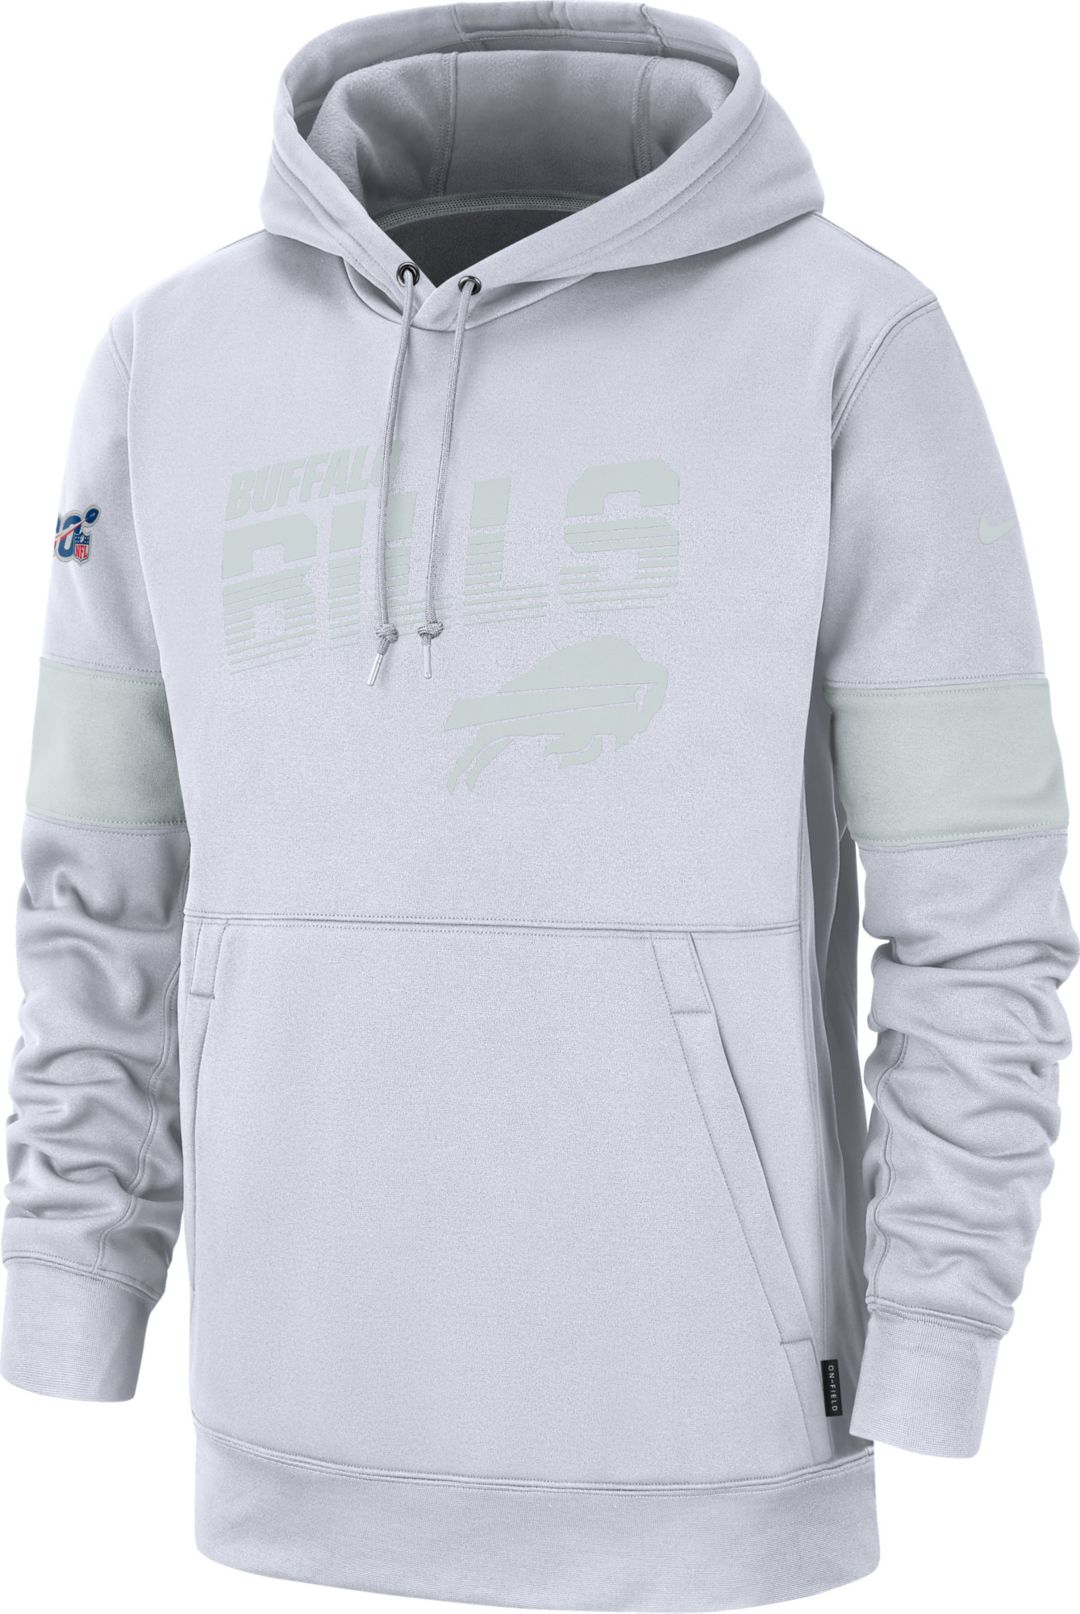 detailed pictures 50989 12941 Nike Men's Buffalo Bills 100th Sideline Therma-FIT Pullover White Hoodie